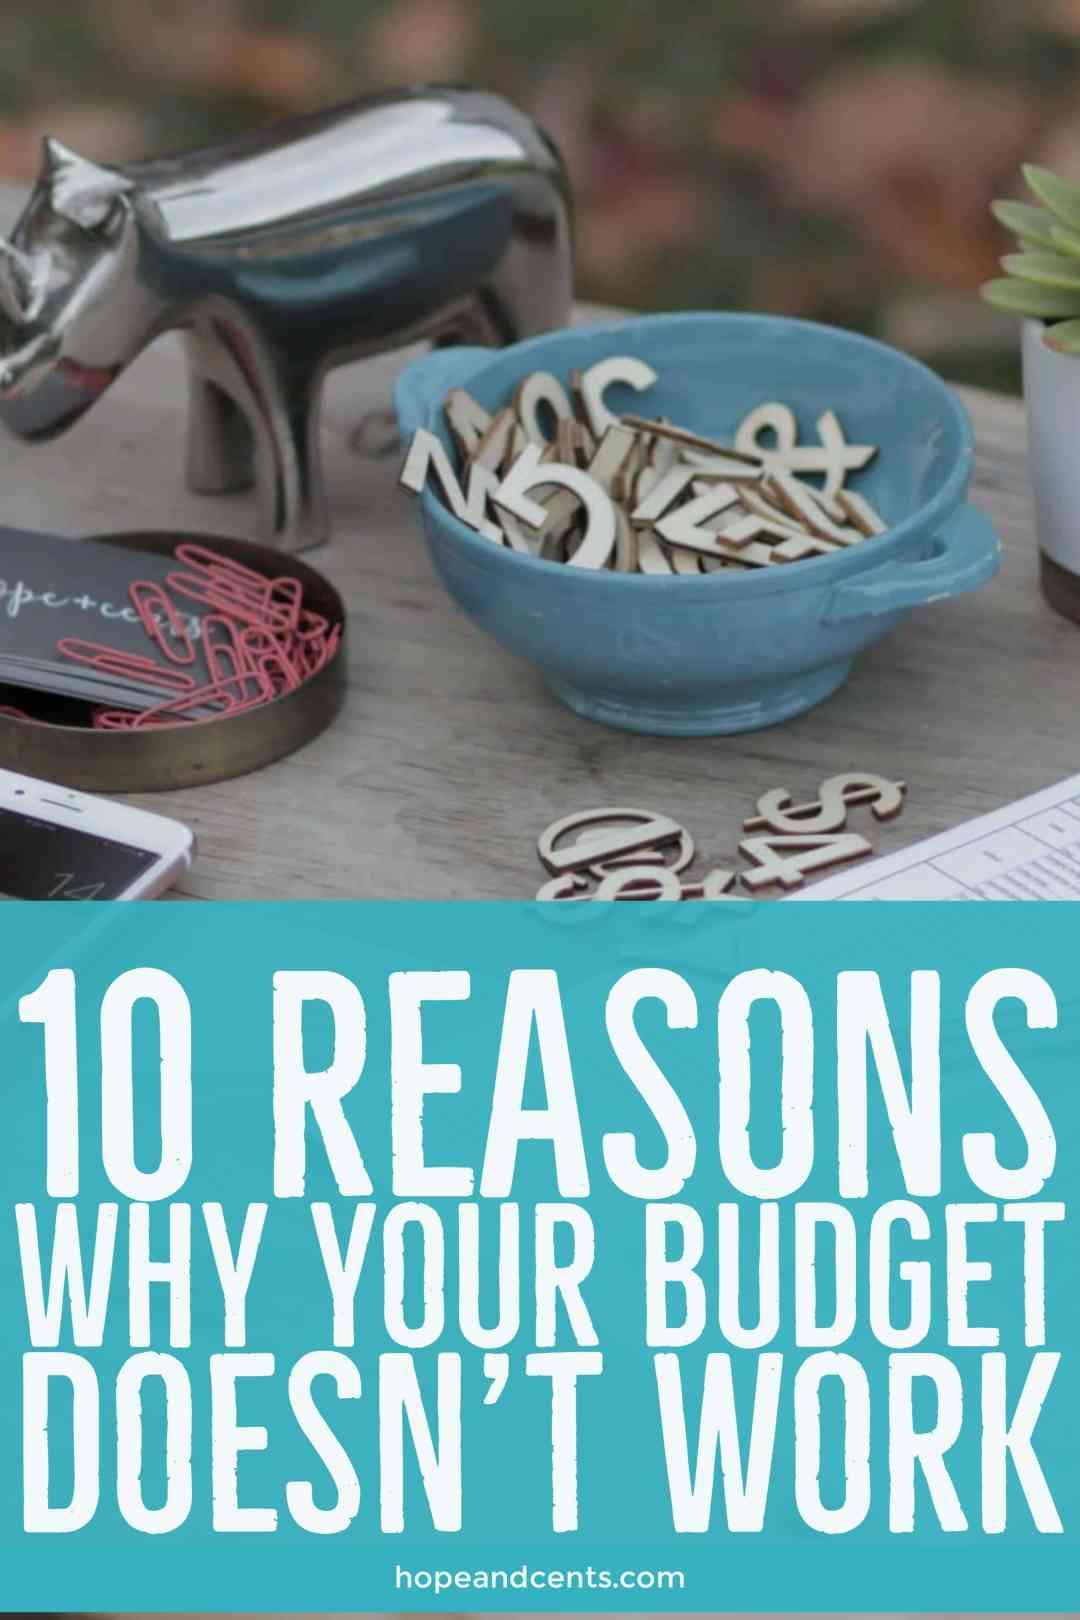 Have tried to budget only to give up? There is a reason your budget doesn't work. In fact, there are several. Learn some changes you can make right away to create a working and lasting budget.